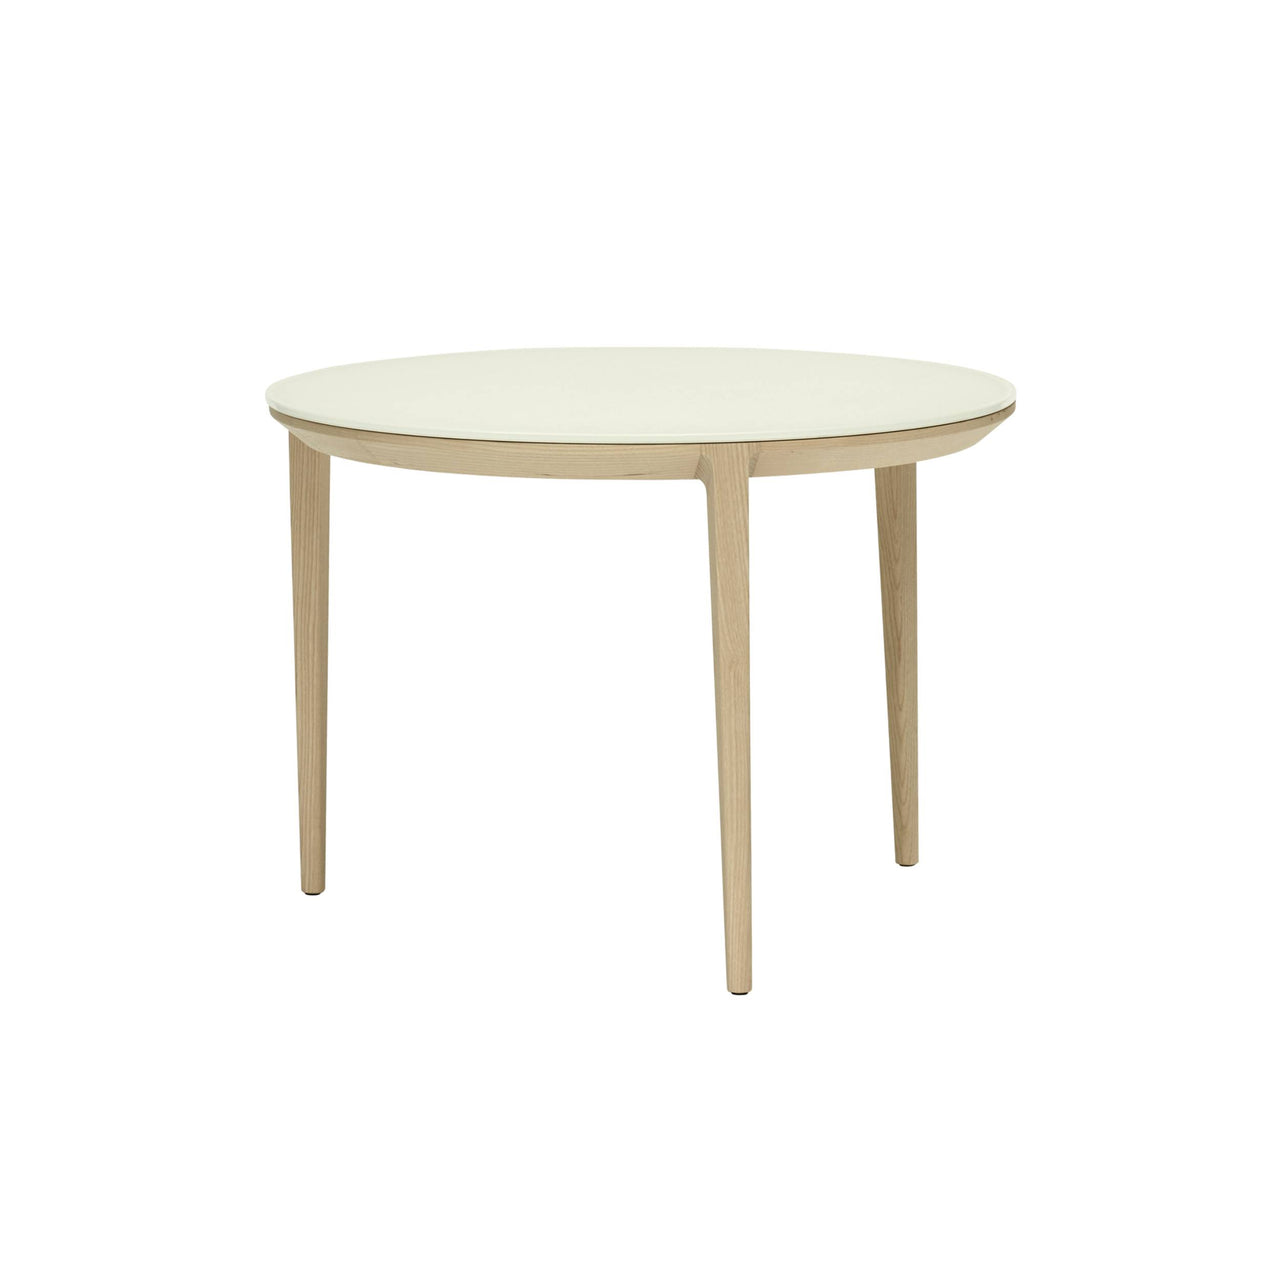 Etoile Side + Coffee Table: Small + Natural Stained Ash + Etched White Glass